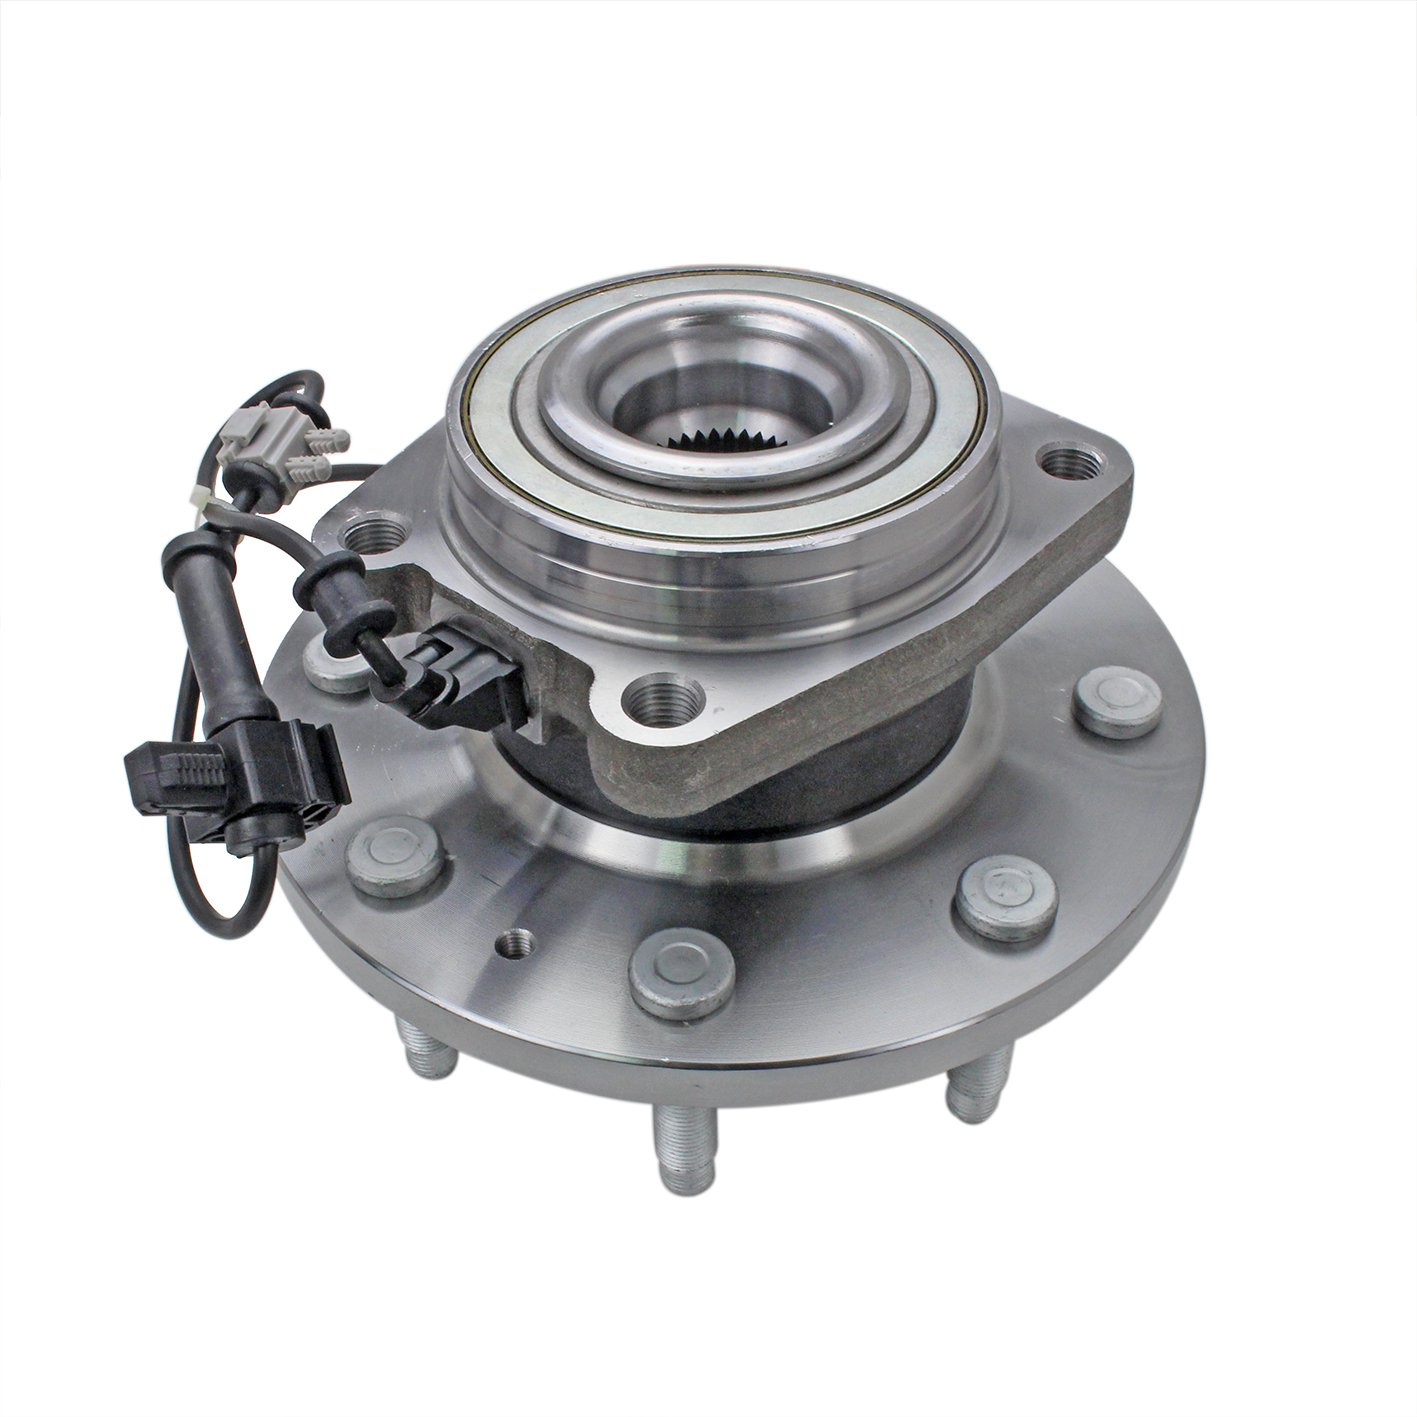 CRS NT620303 New Wheel Bearing Hub Assembly, Front Driver (Left)/ Passenger (Right), for 2011-2016 Chevy Silverado 2500 (HD)/ 3500HD, GMC 2011-2015 Sierra 3500/2011-2016 2500 (HD), 4WD by CRS